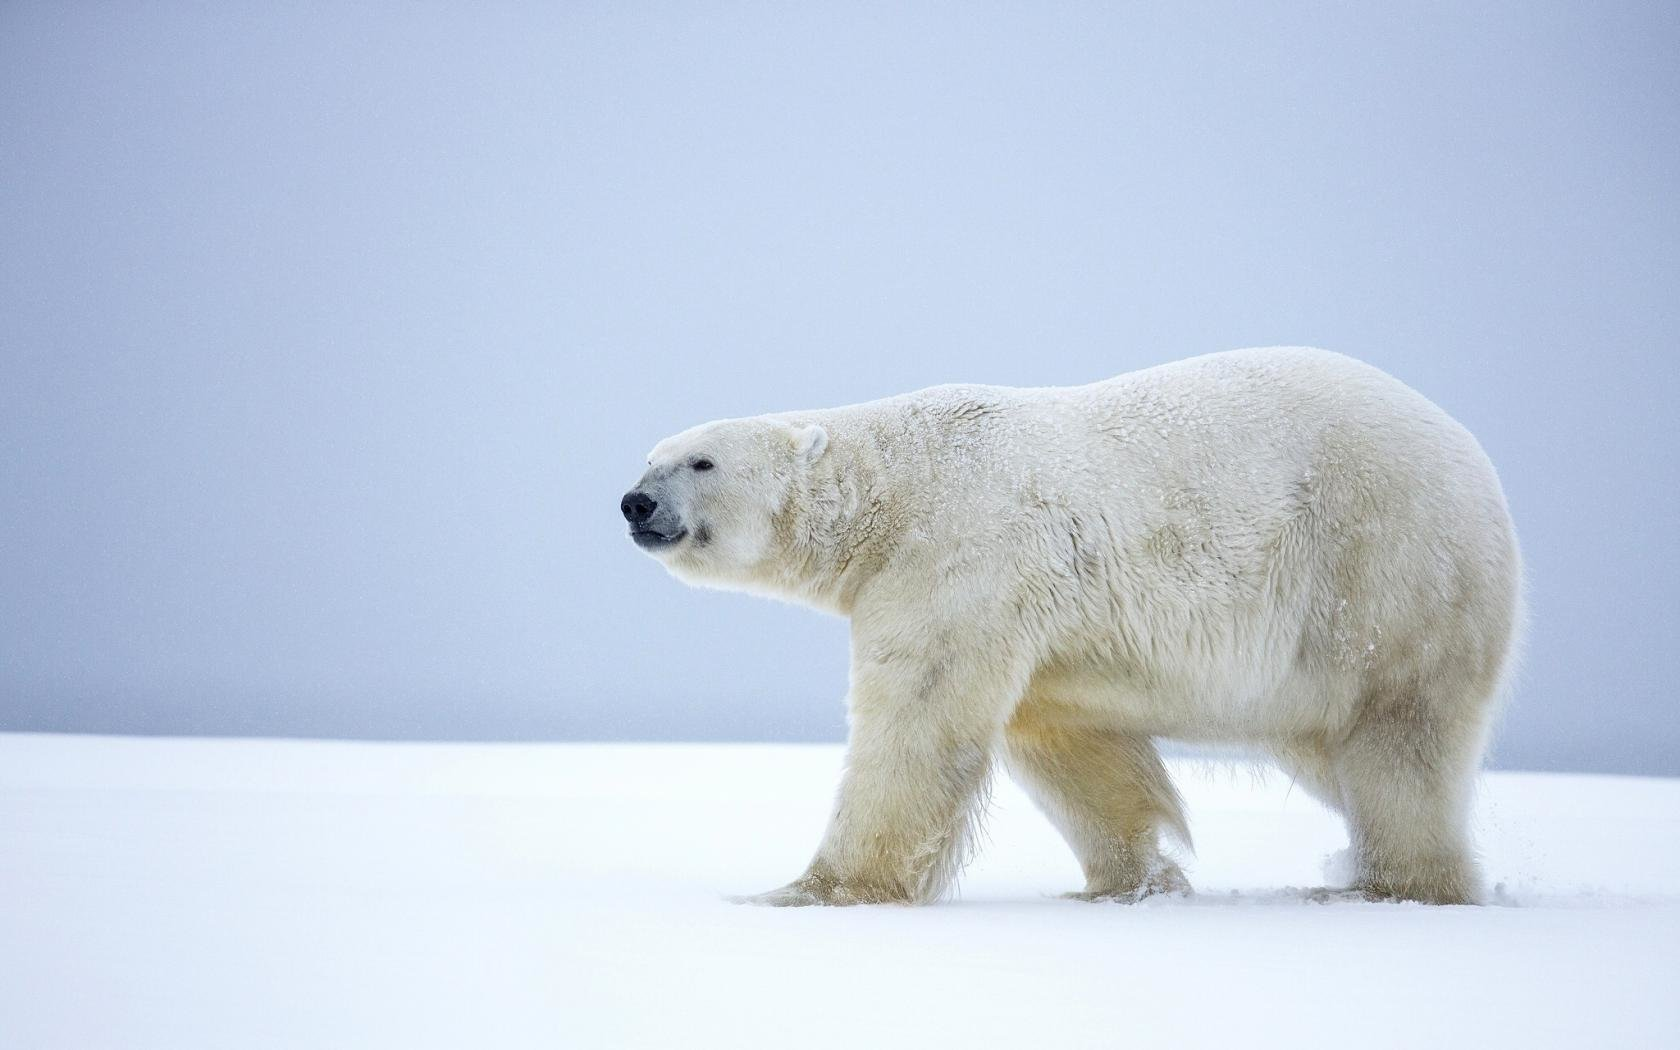 Download hd 1680x1050 Polar Bear PC background ID:359893 for free